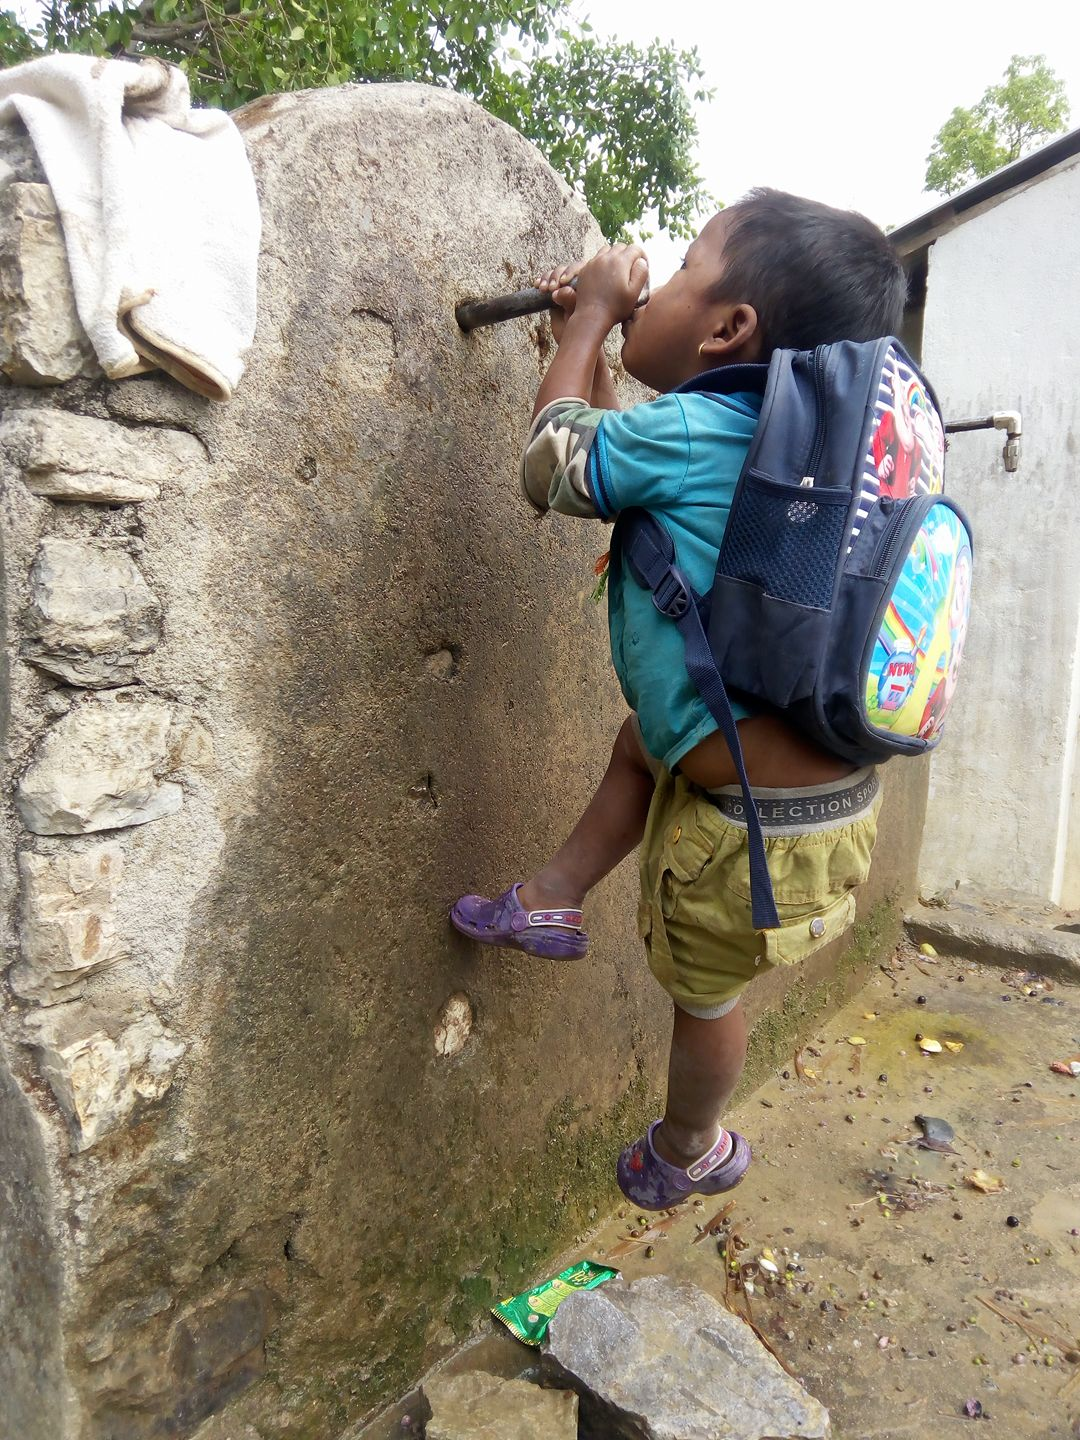 I'm very thirsty: a child in rural village attacks the tap as the tap runs out of water.